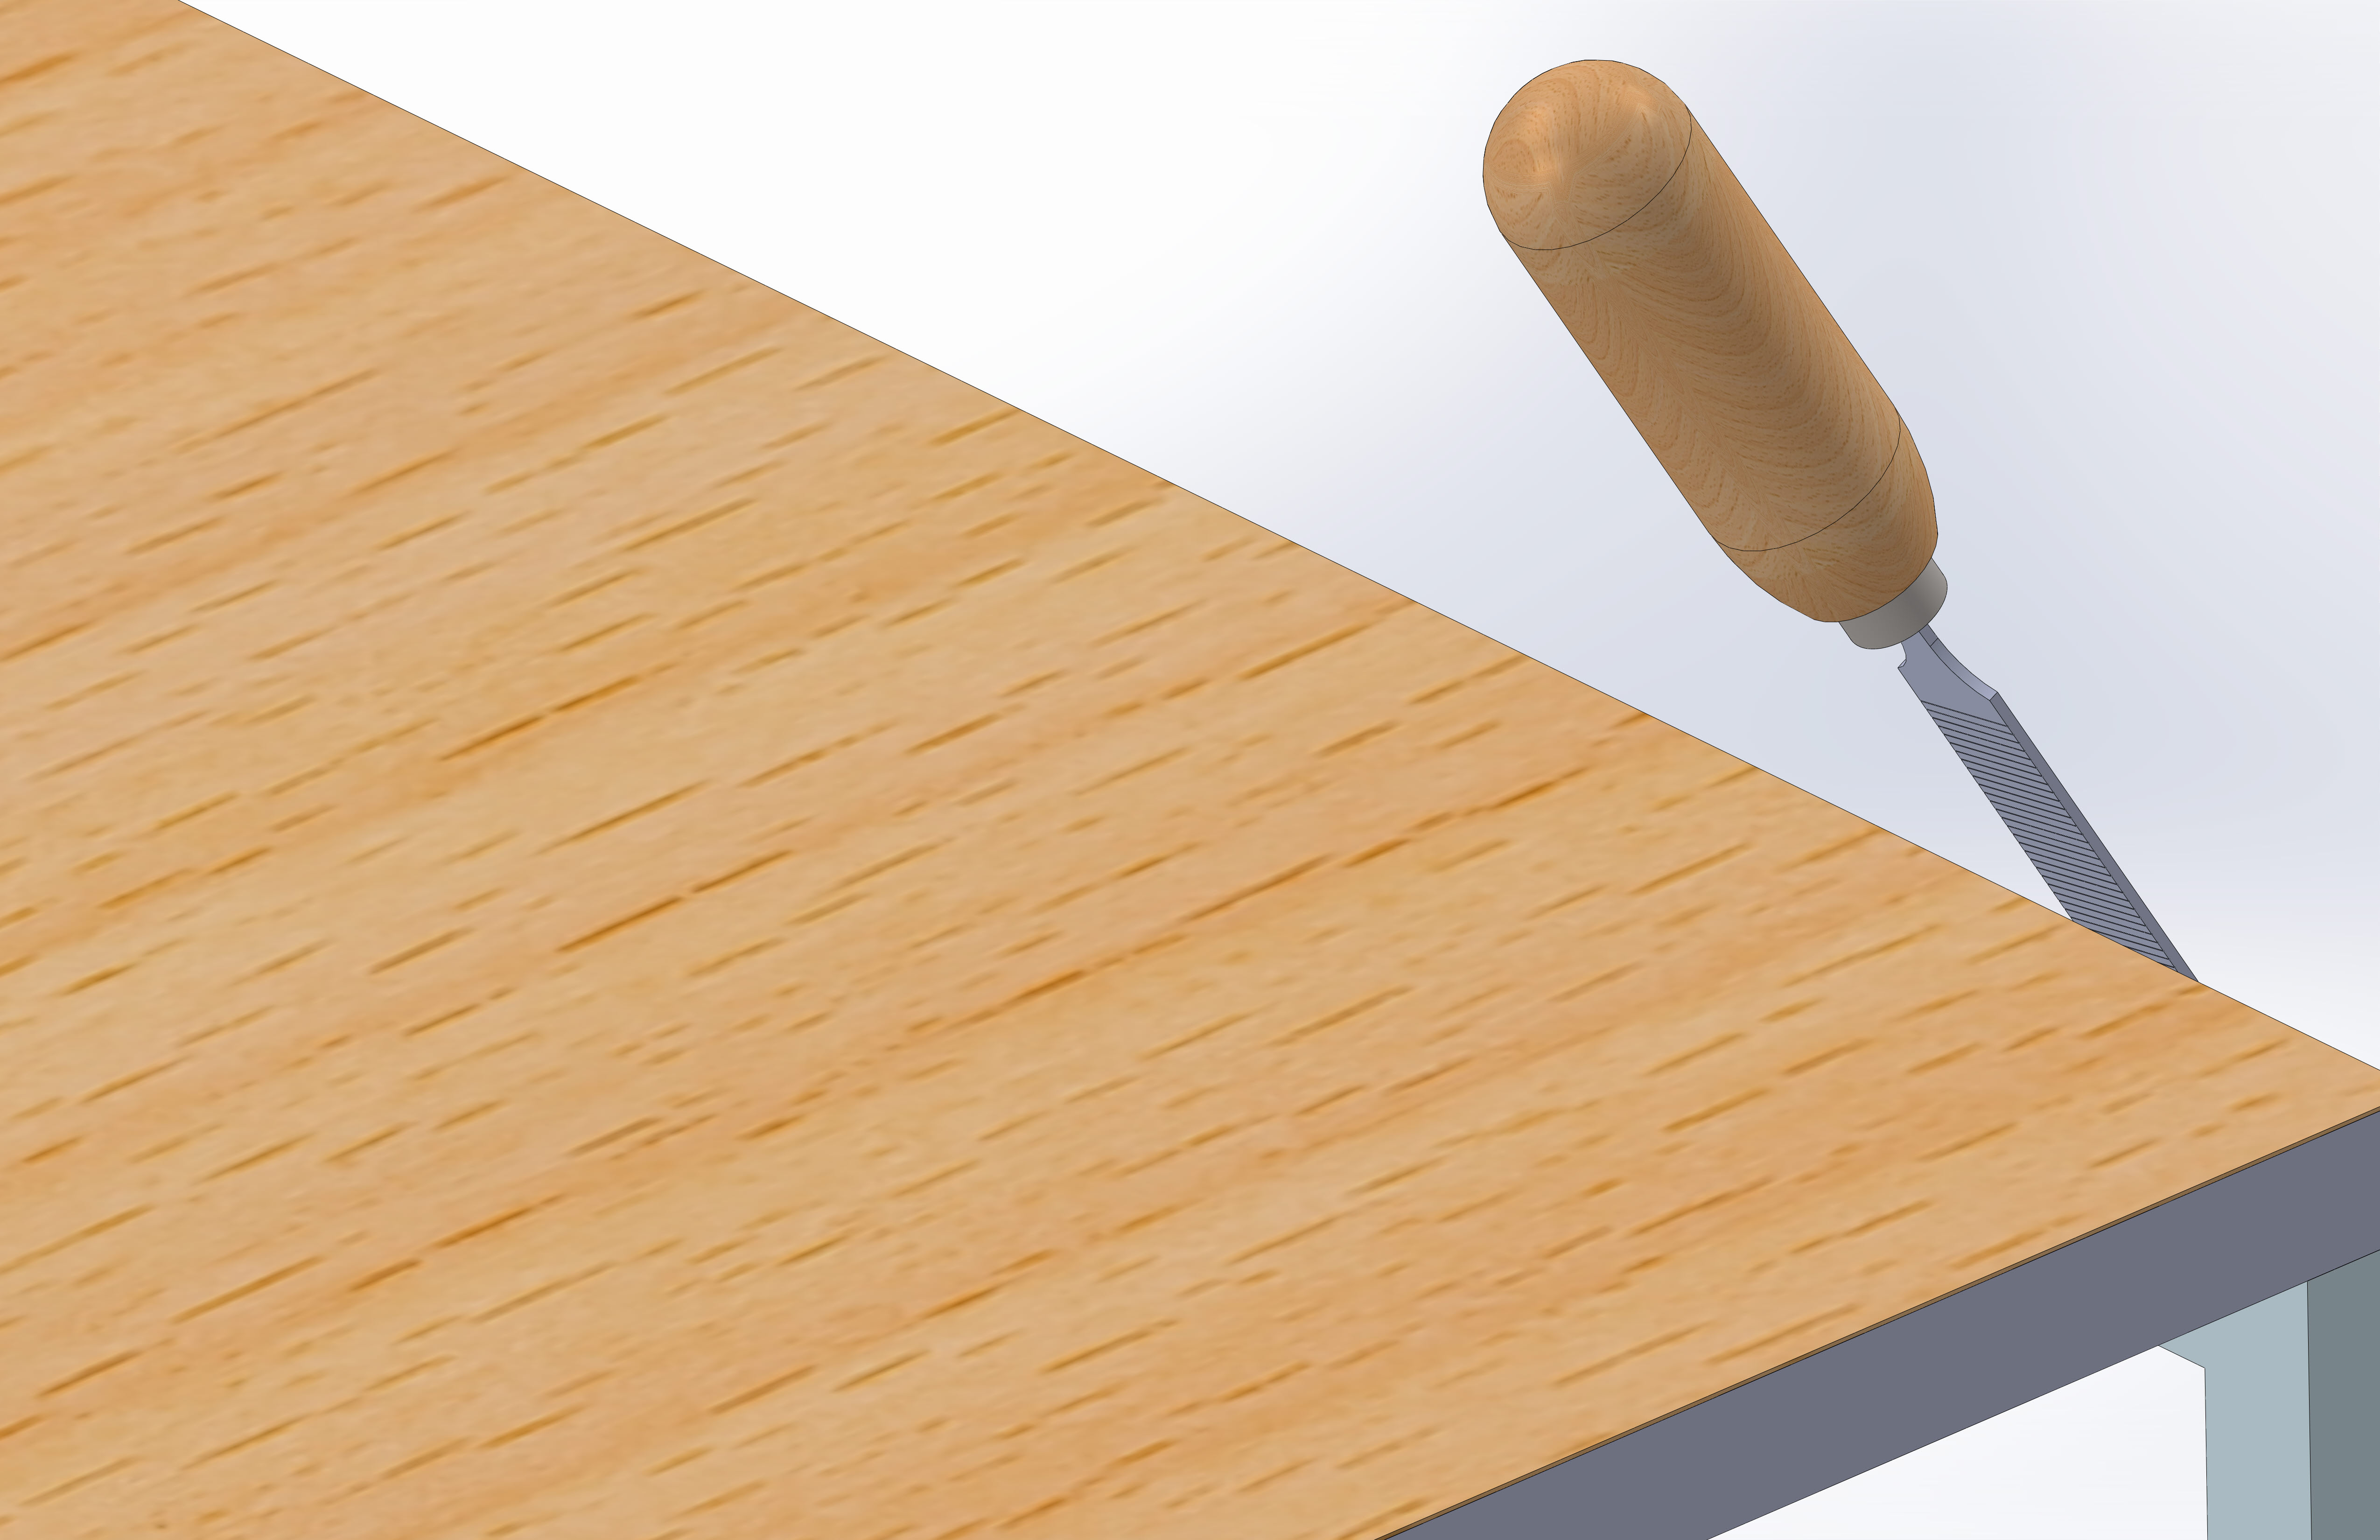 4 Ways To Cut Formica Wikihow